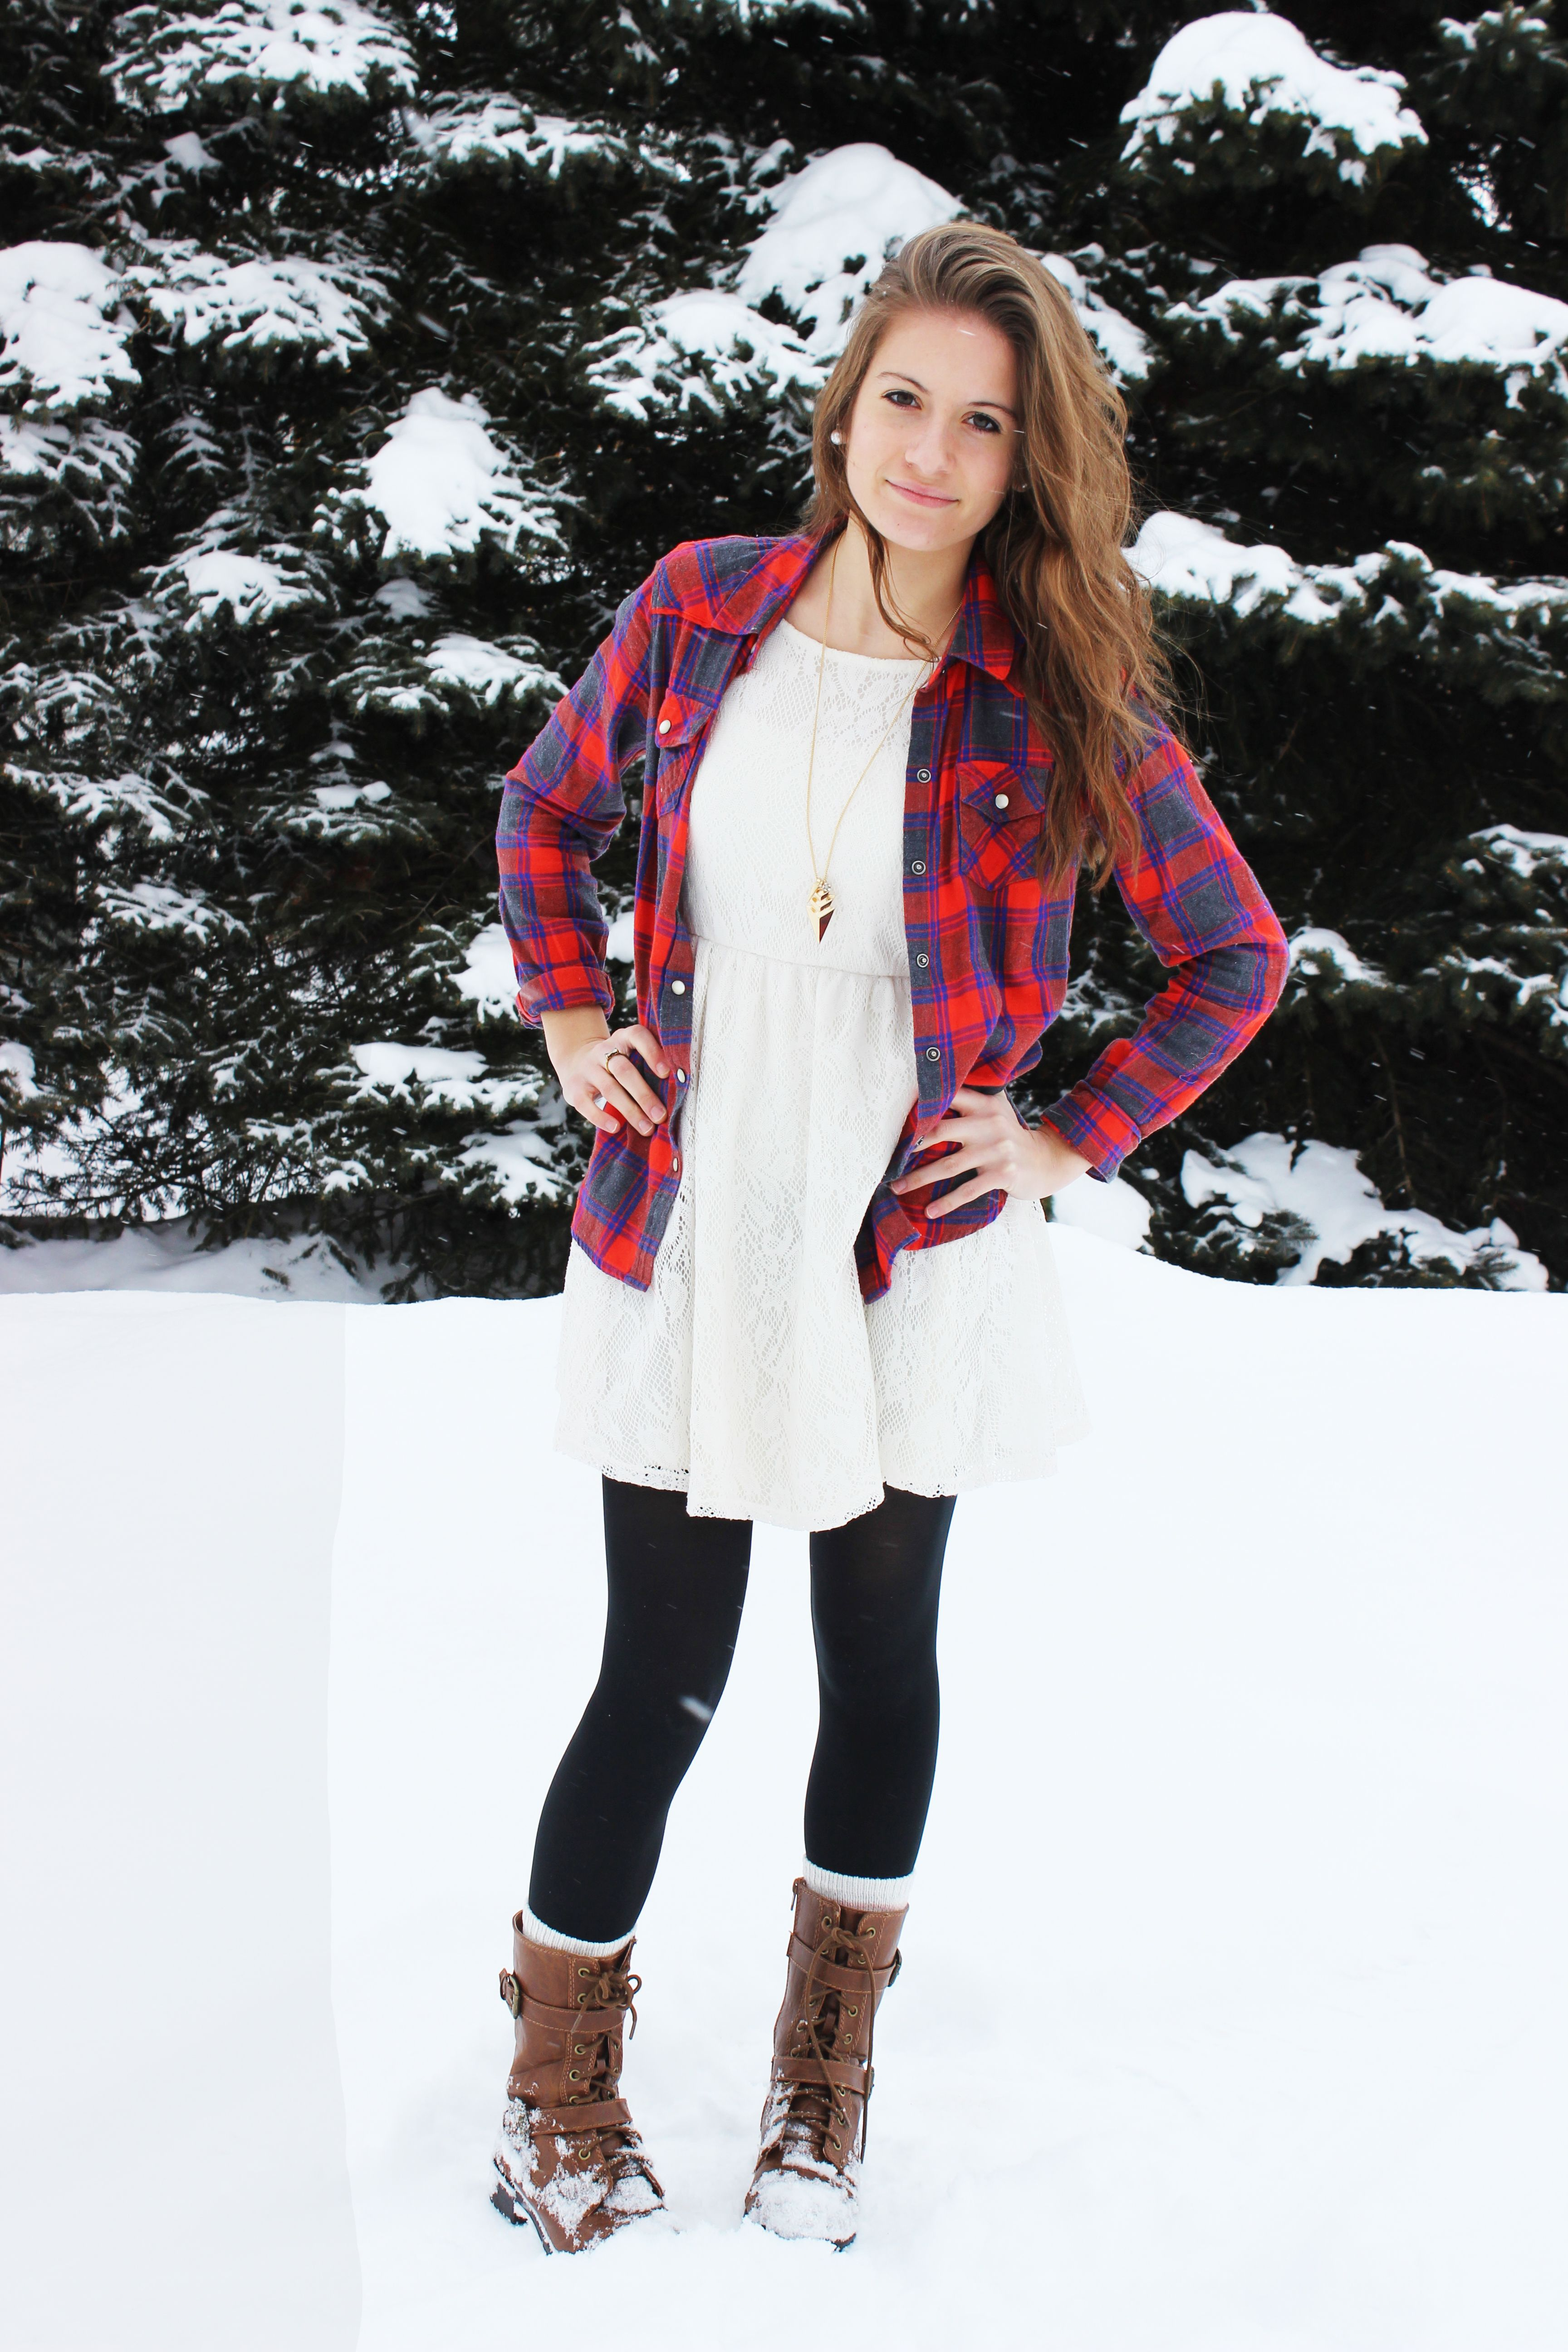 Turn Your Summer Dresses Into Winter Outfits